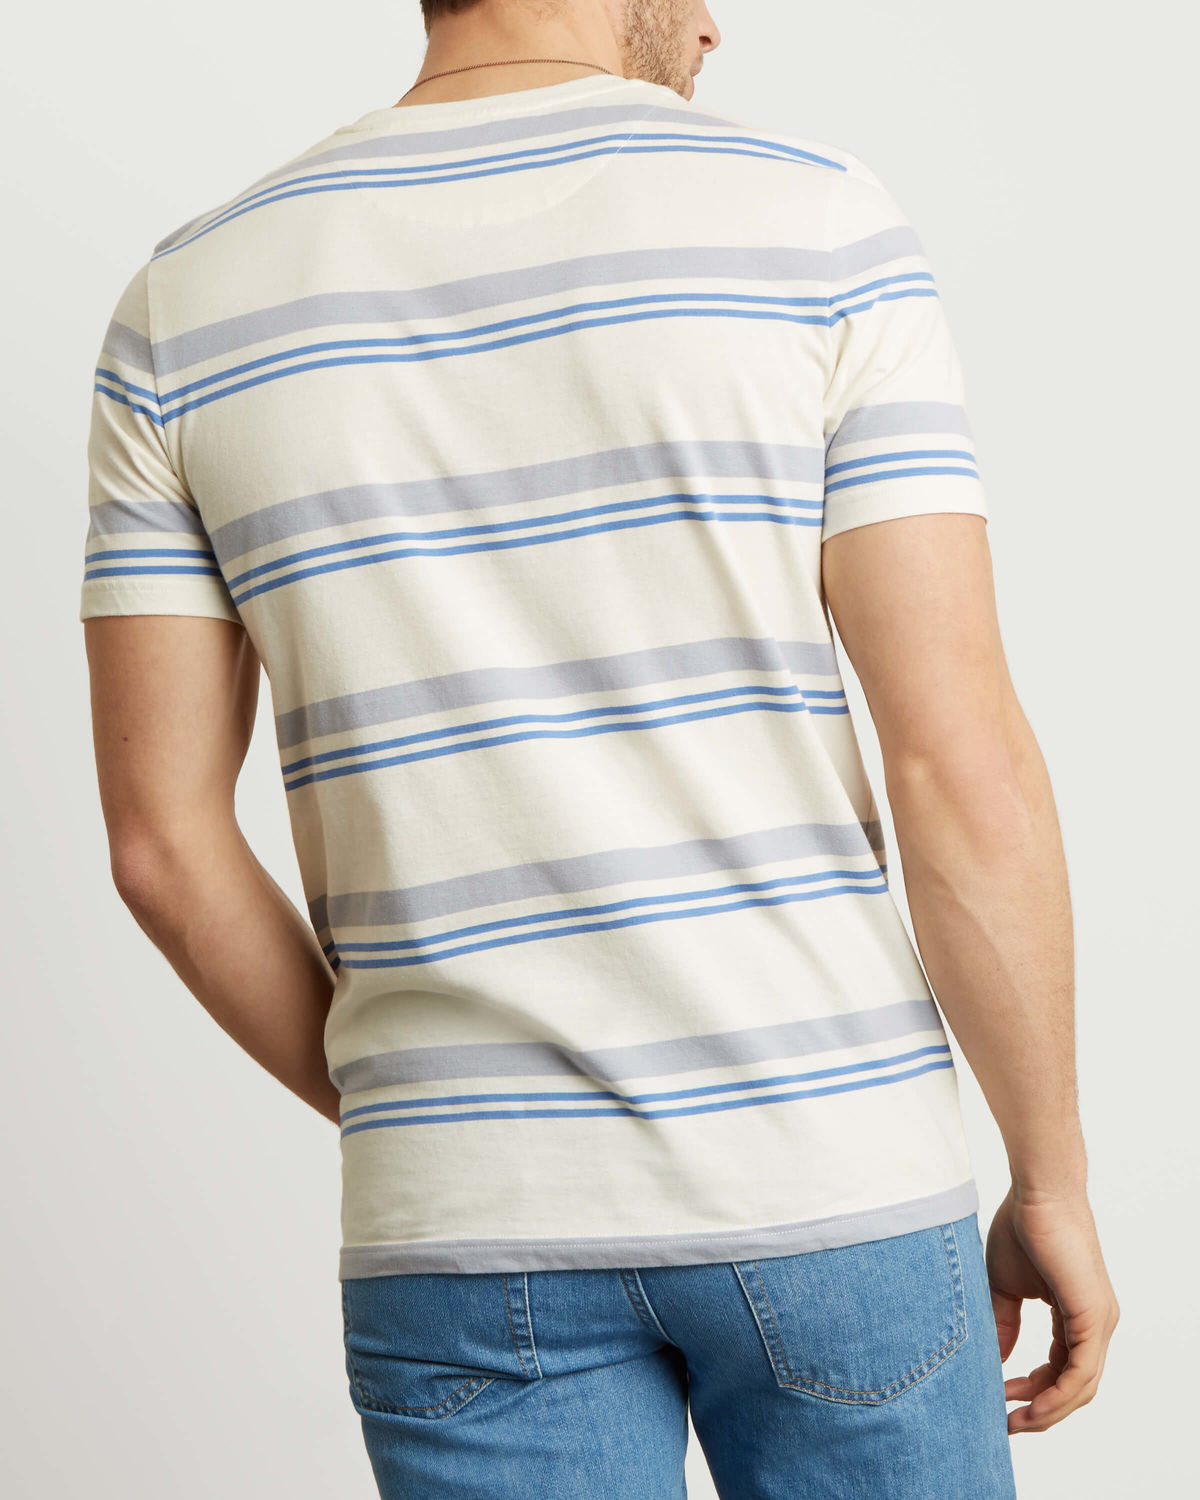 LYLE & SCOTT Stripe T-Shirt - SNOW WHITE